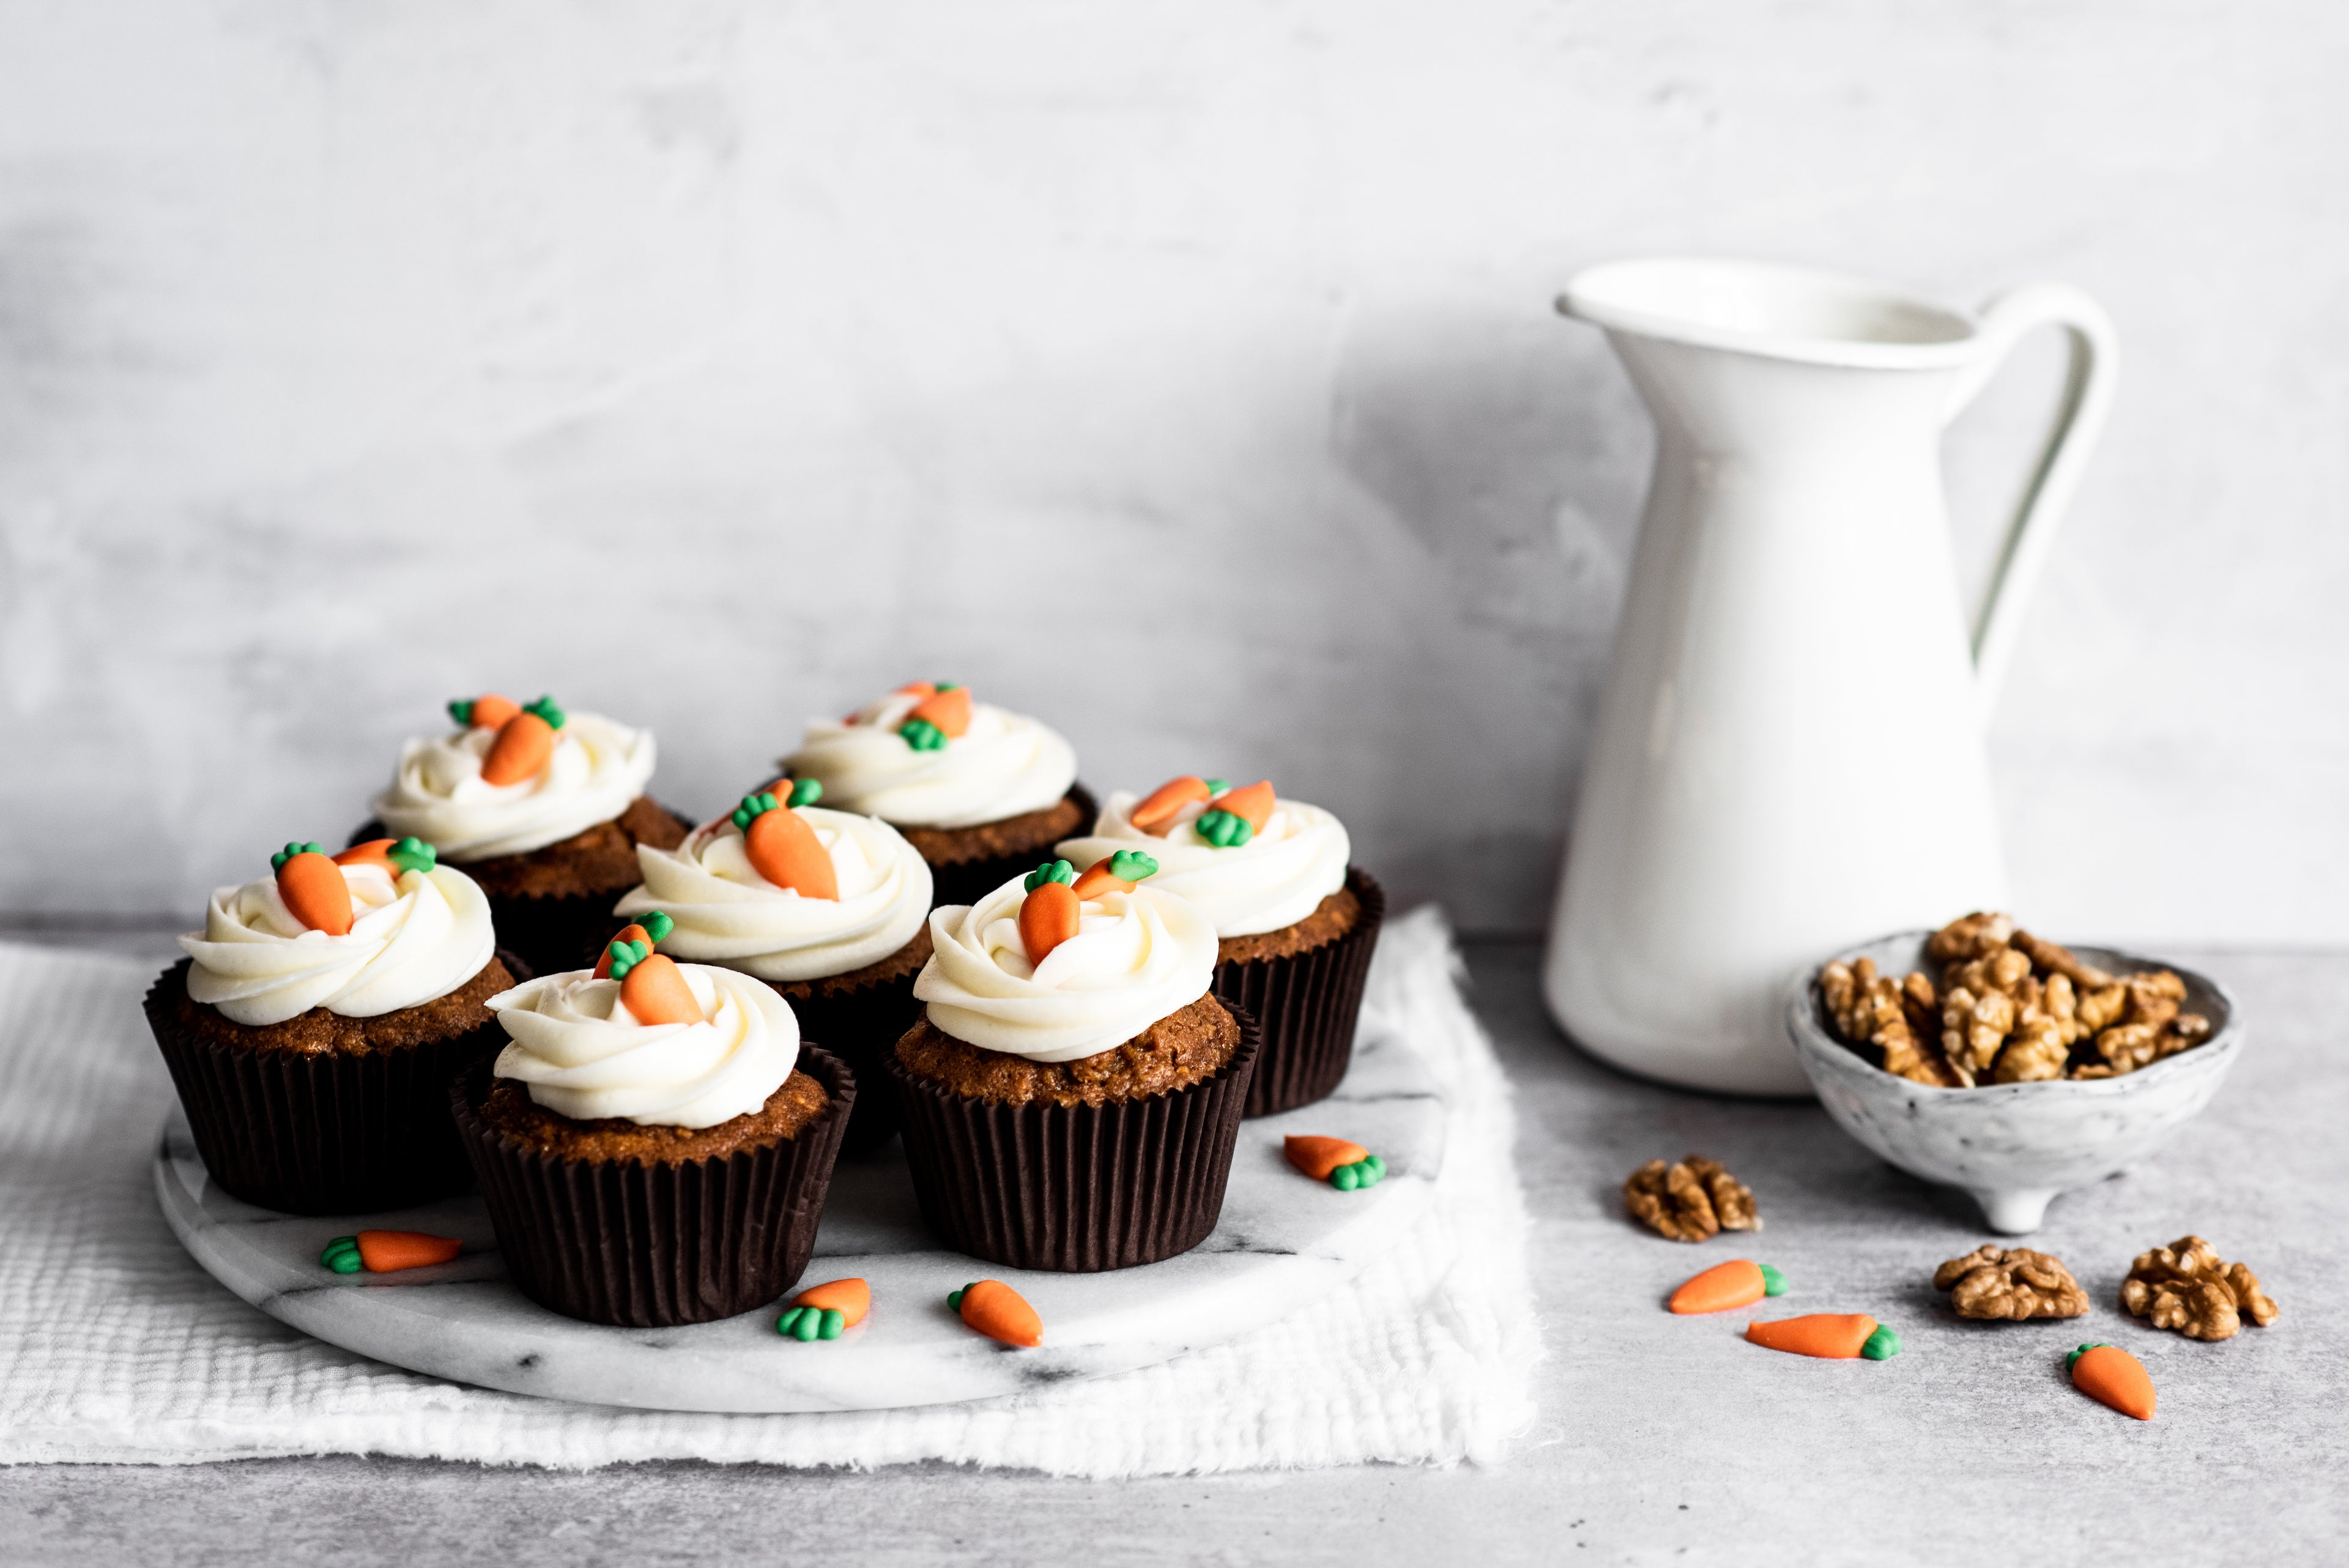 Carrot cake cupcakes with cream cheese icing and carrot decorations